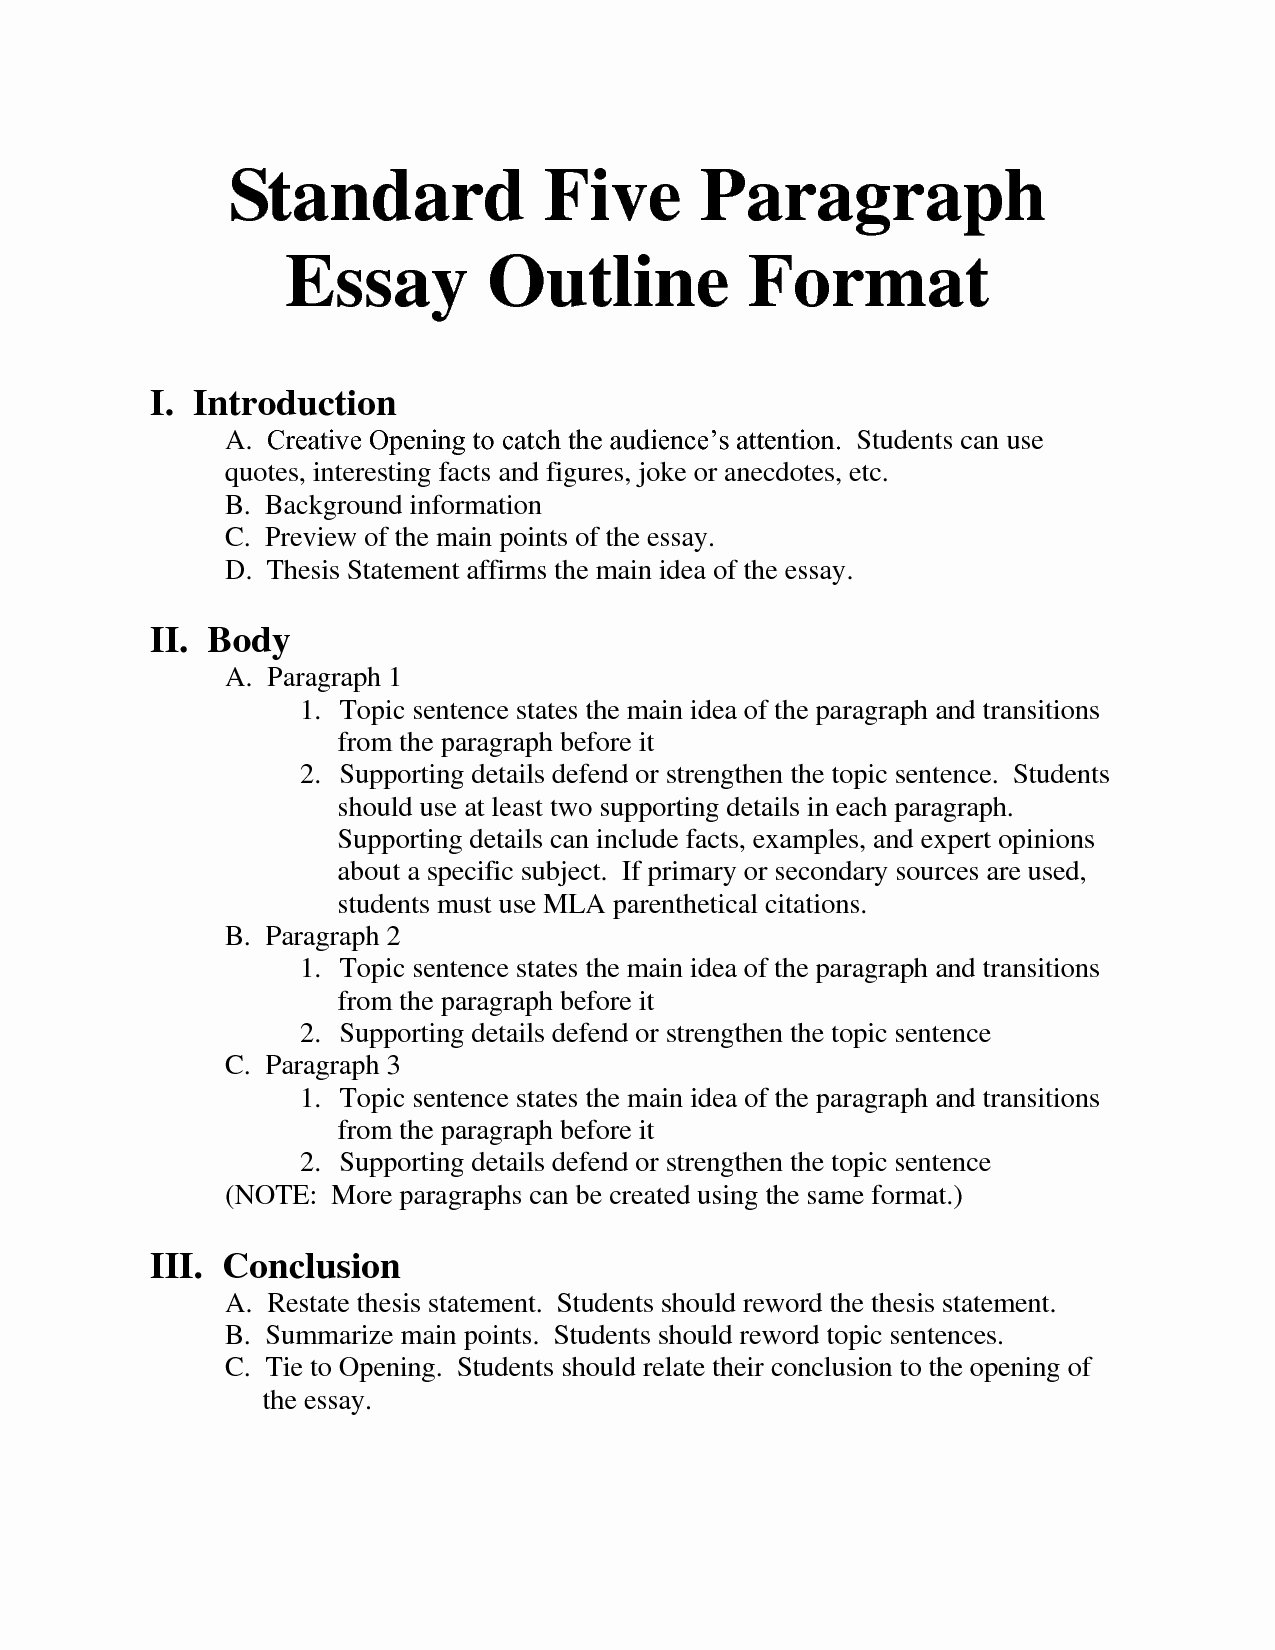 016 Unique Evaluation Essay Outline English Format Movie Of Self Film Template Layout Critical Example Incredible Topics On Horror Movies Definition Full